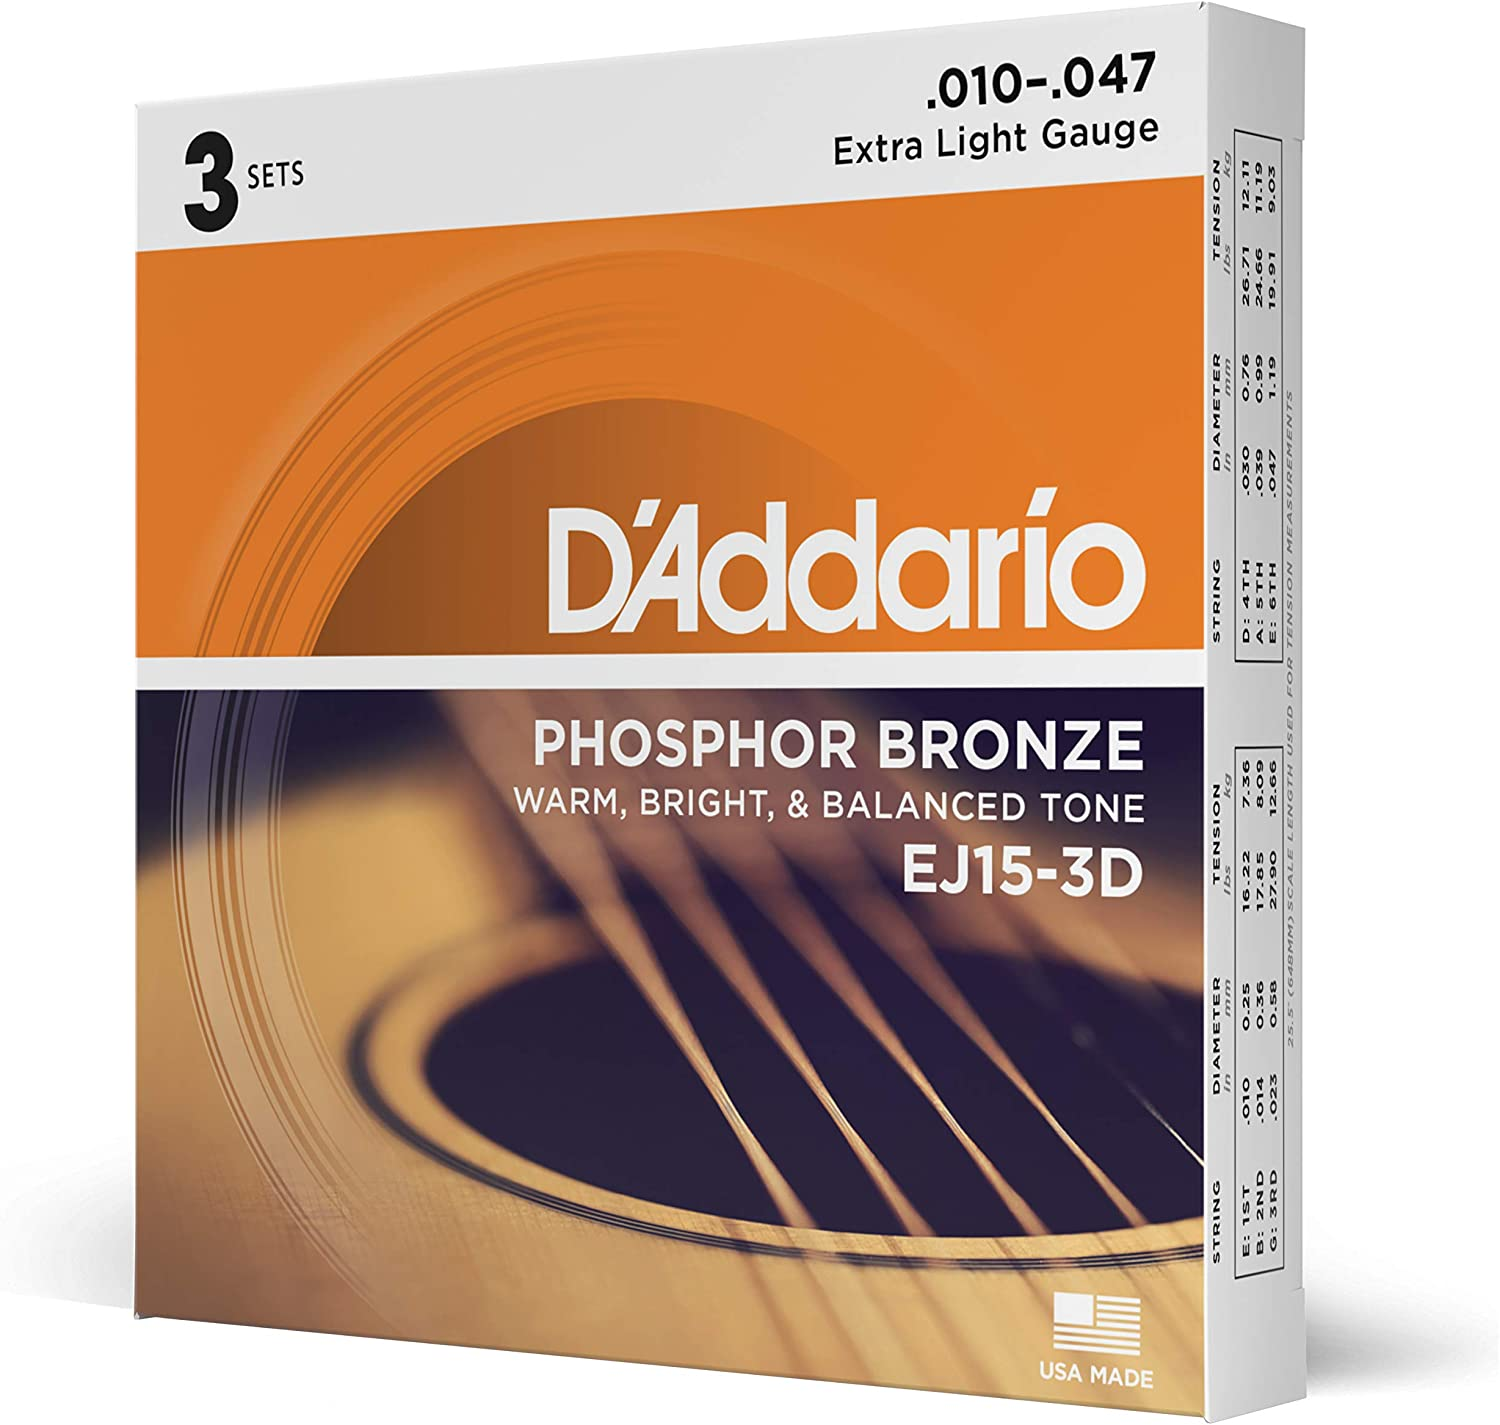 D'Addario EJ15 Phosphor Bronze Acoustic Guitar Strings, Extra Light (3 Pack) – Corrosion-Resistant Phosphor Bronze, Offers a Warm, Bright and Well-Balanced Acoustic Tone and Comfortable Playability